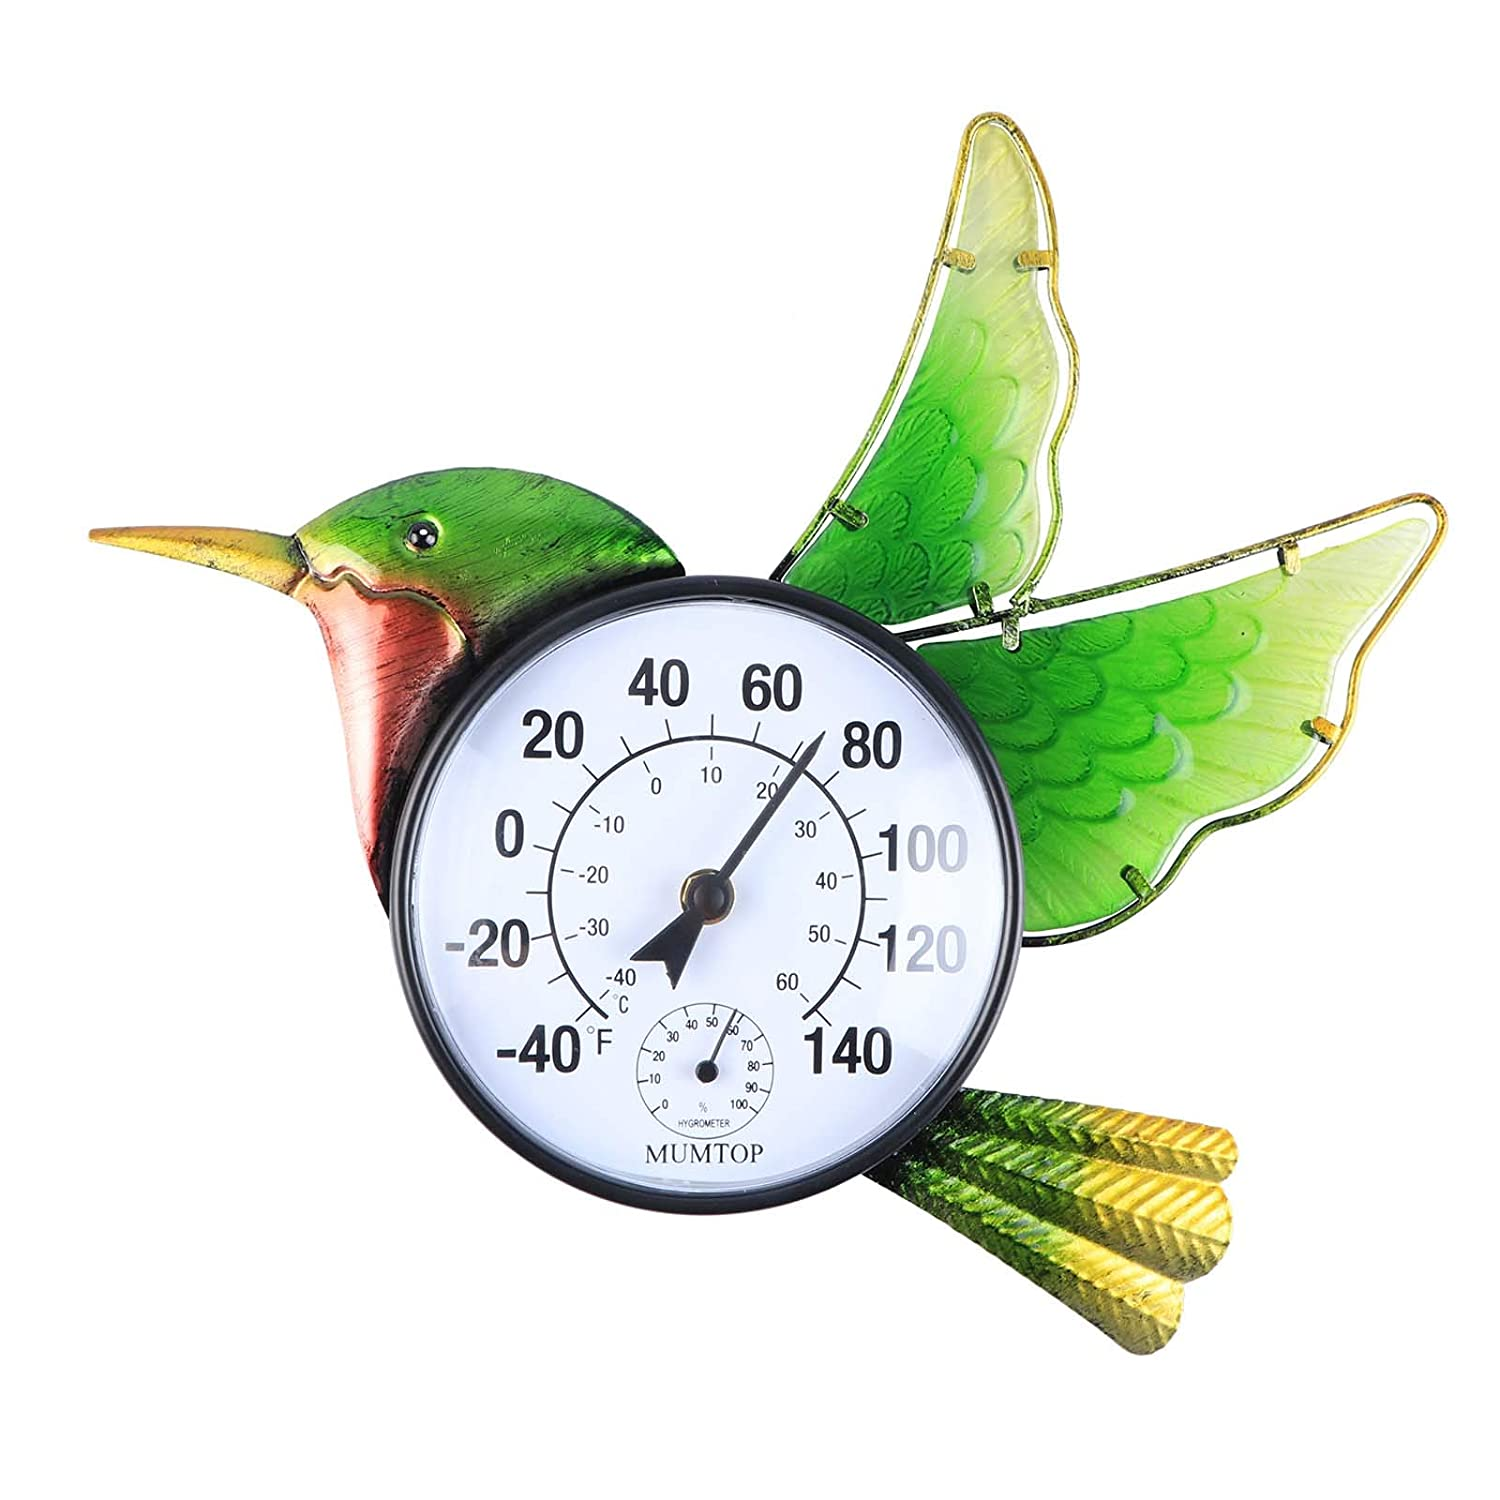 MUMTOP Thermometer Indoor Outdoor Patio Hummingbird Waterproof Wall-Mounted Thermometer Does not Require Any Battery